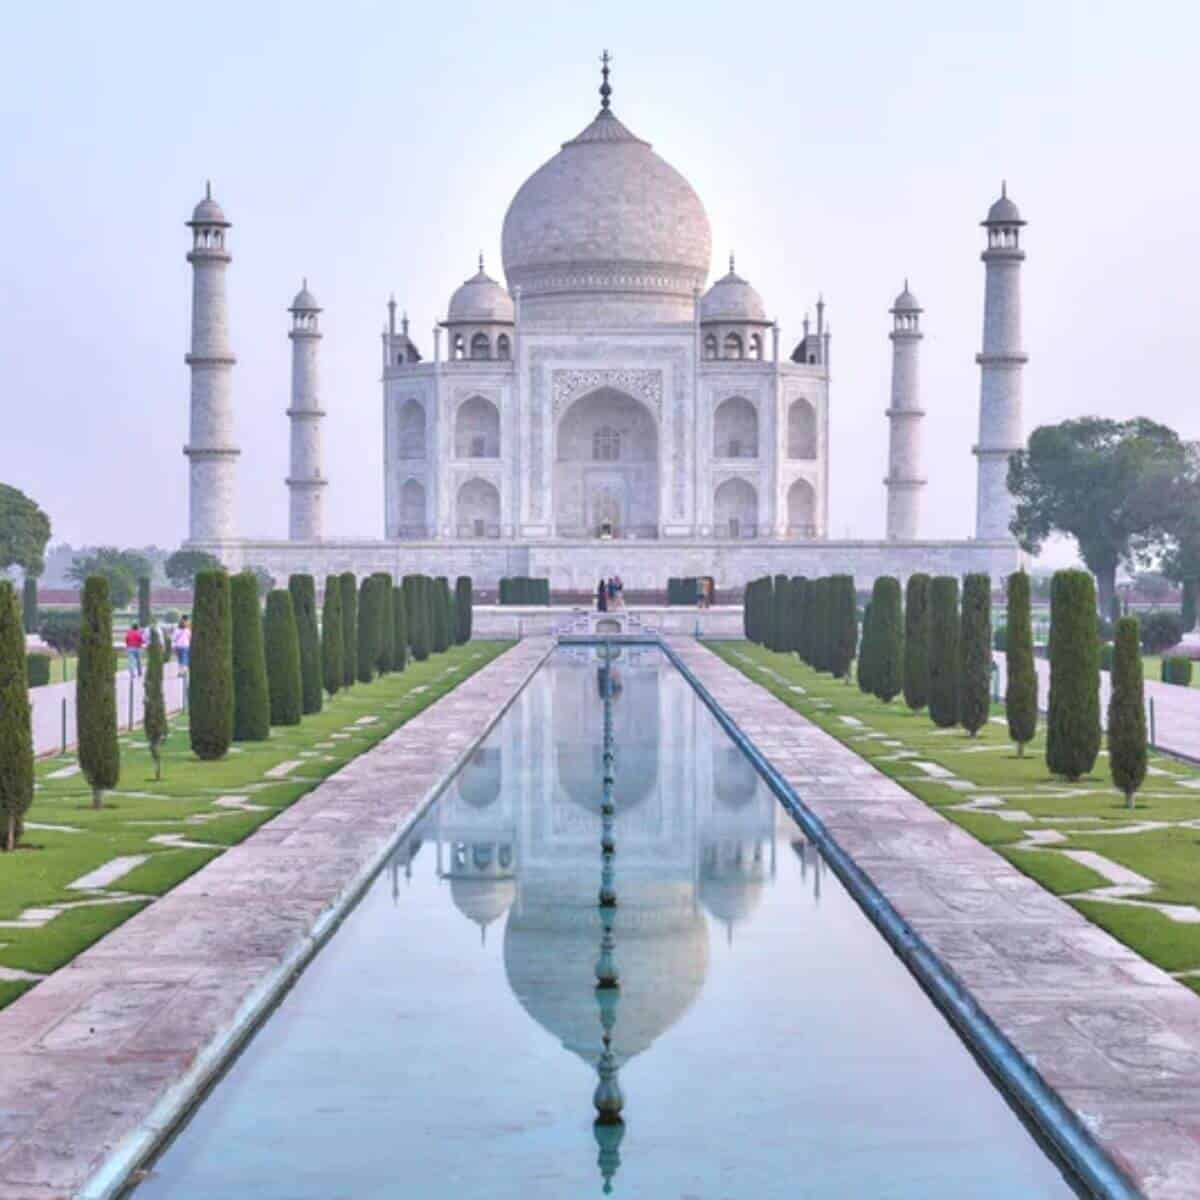 View of Taj Mahal from the reflecting pool.